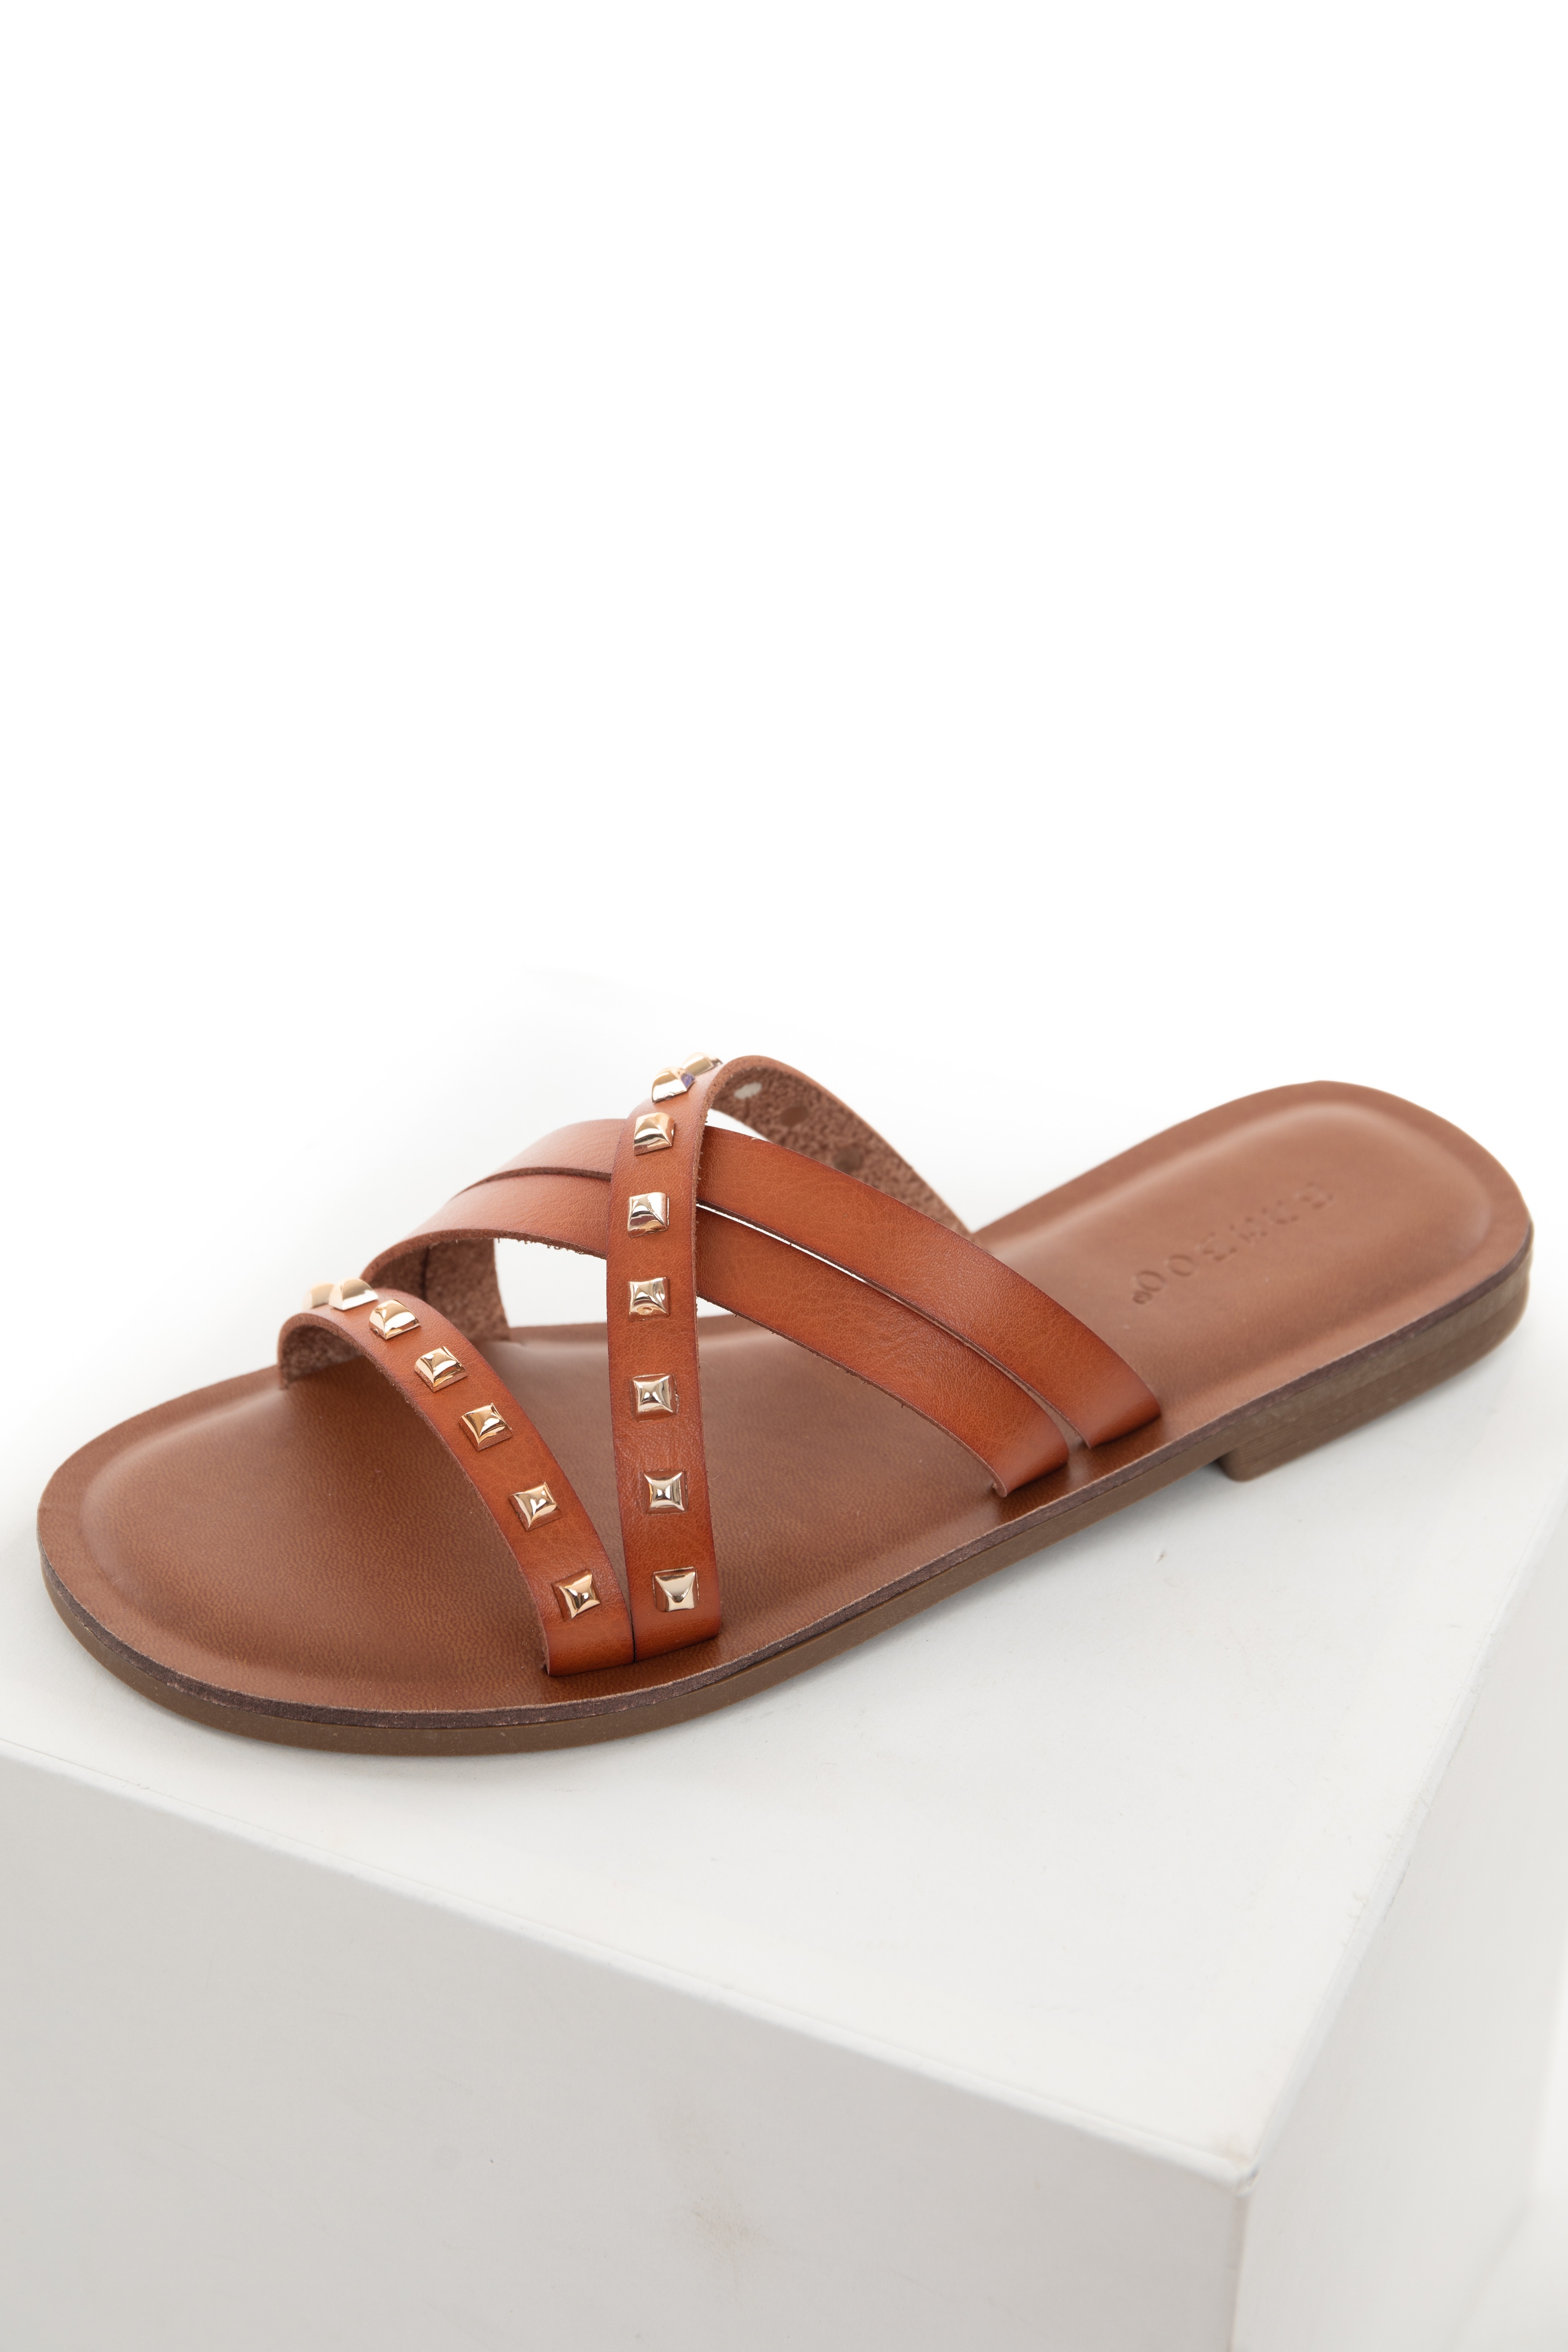 Spice Strappy Gold Square Studs Flat Sandal